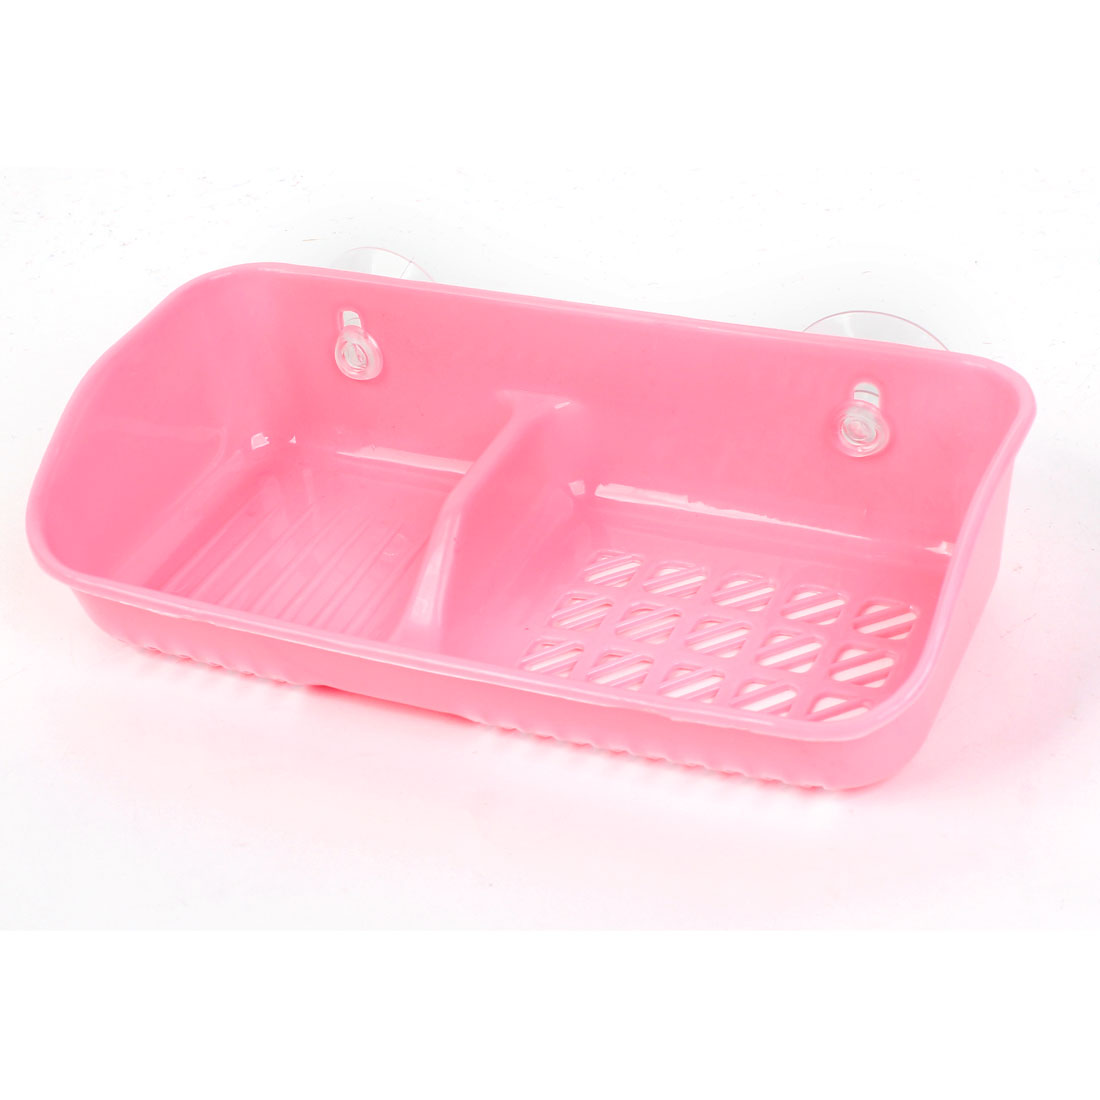 Pink Plastic Hollow Out 2 Comparments Bottom Soap Case Box Holder w Suction Cup